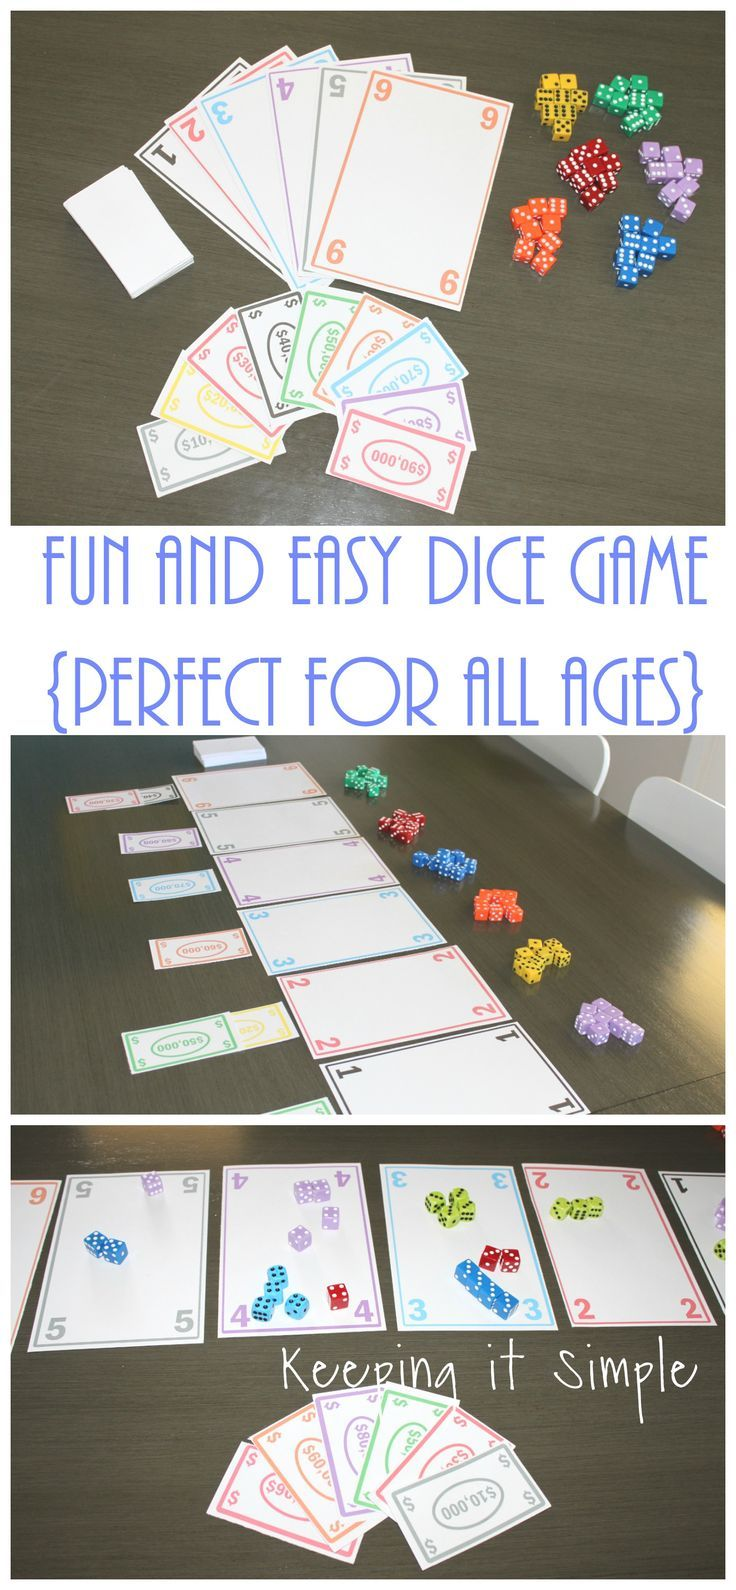 fun and easy dice game with printable  games for kids